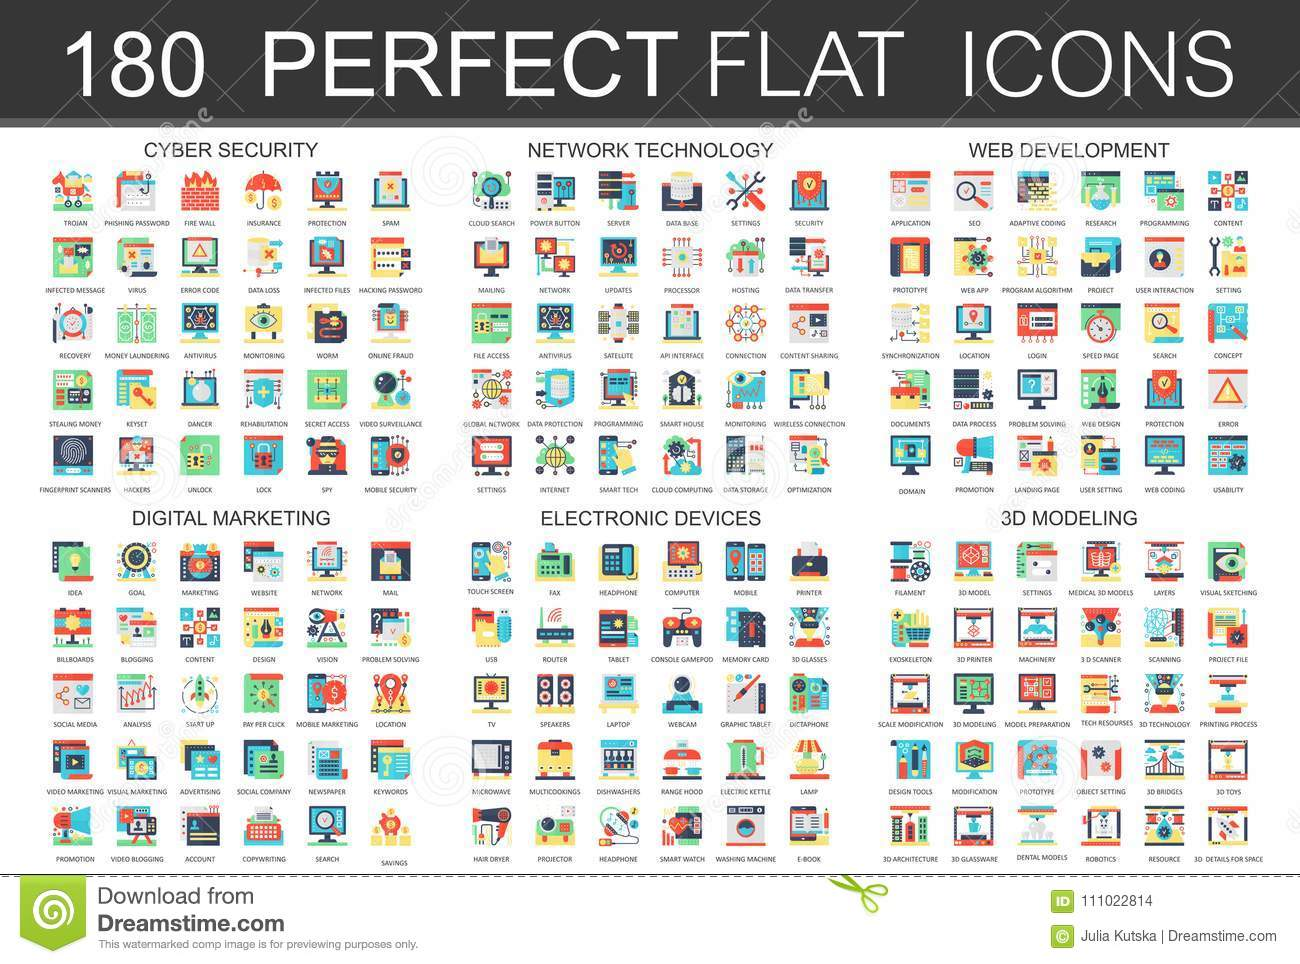 180 modern flat icons set of cyber security, network technology, web development, digital marketing, electronic devices